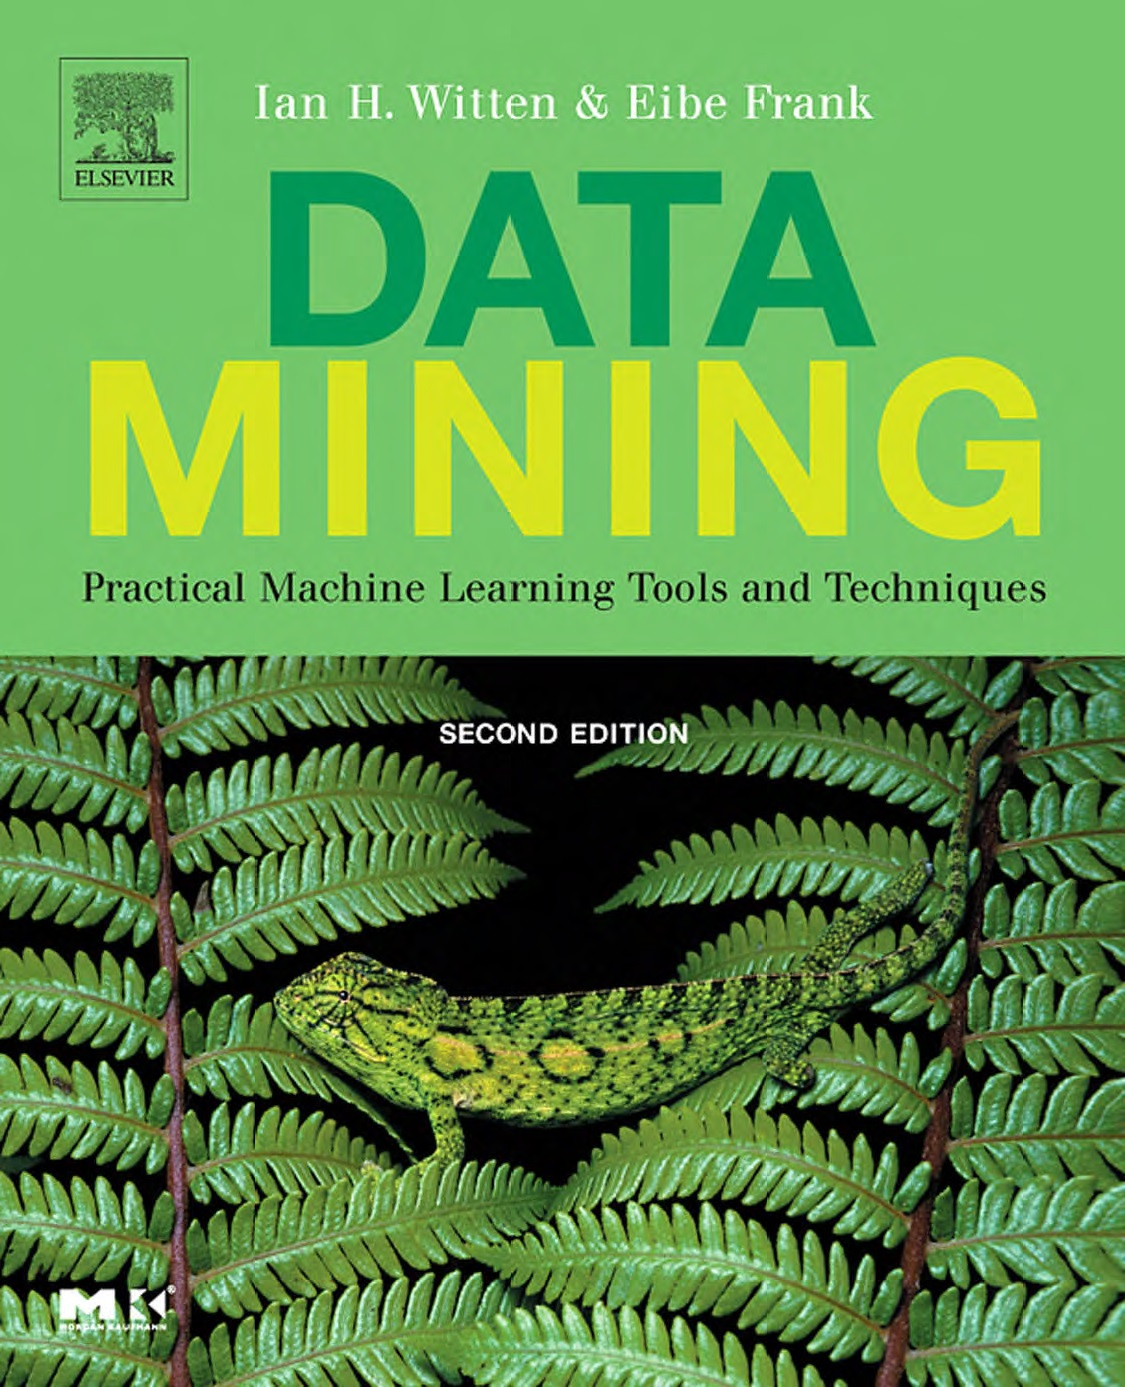 data mining concepts and techniques 3rd edition ebook free download